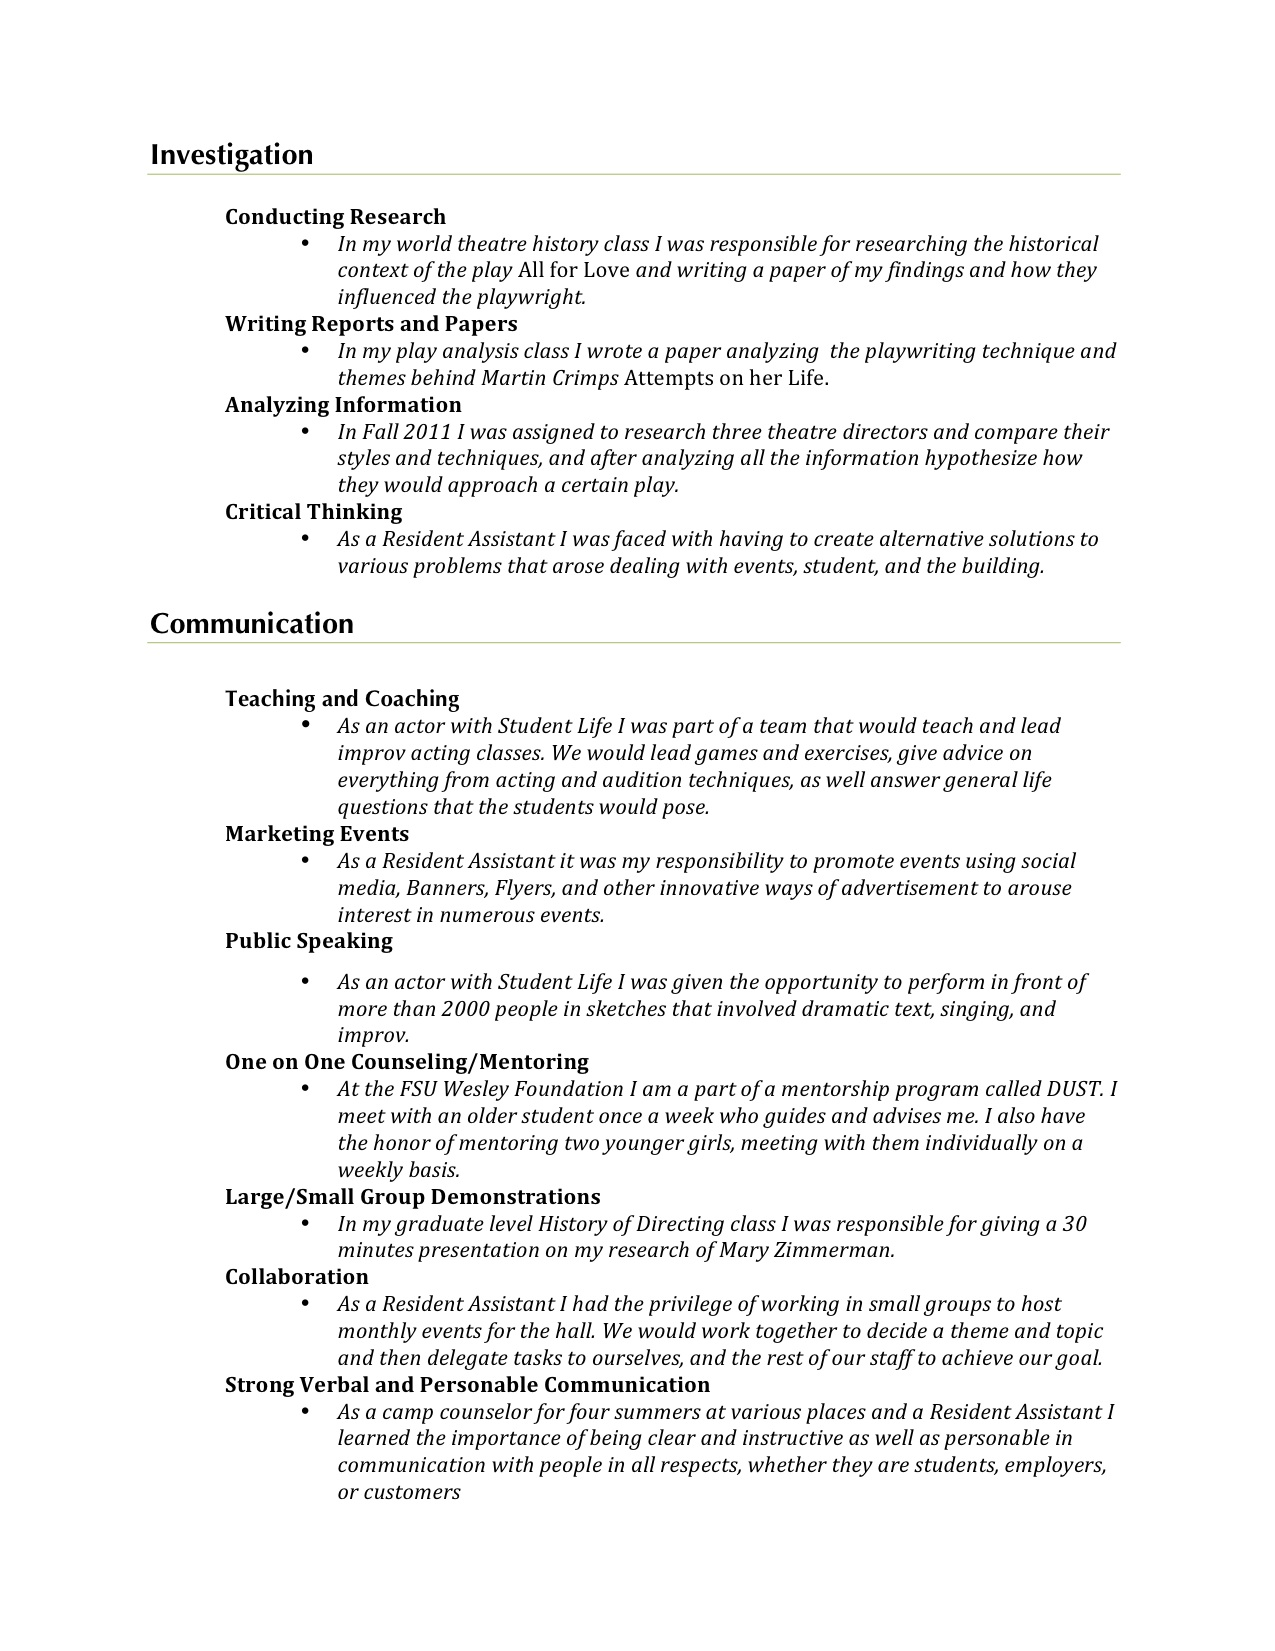 resume for it professional professional resume audrey jean resume for it professional 2203